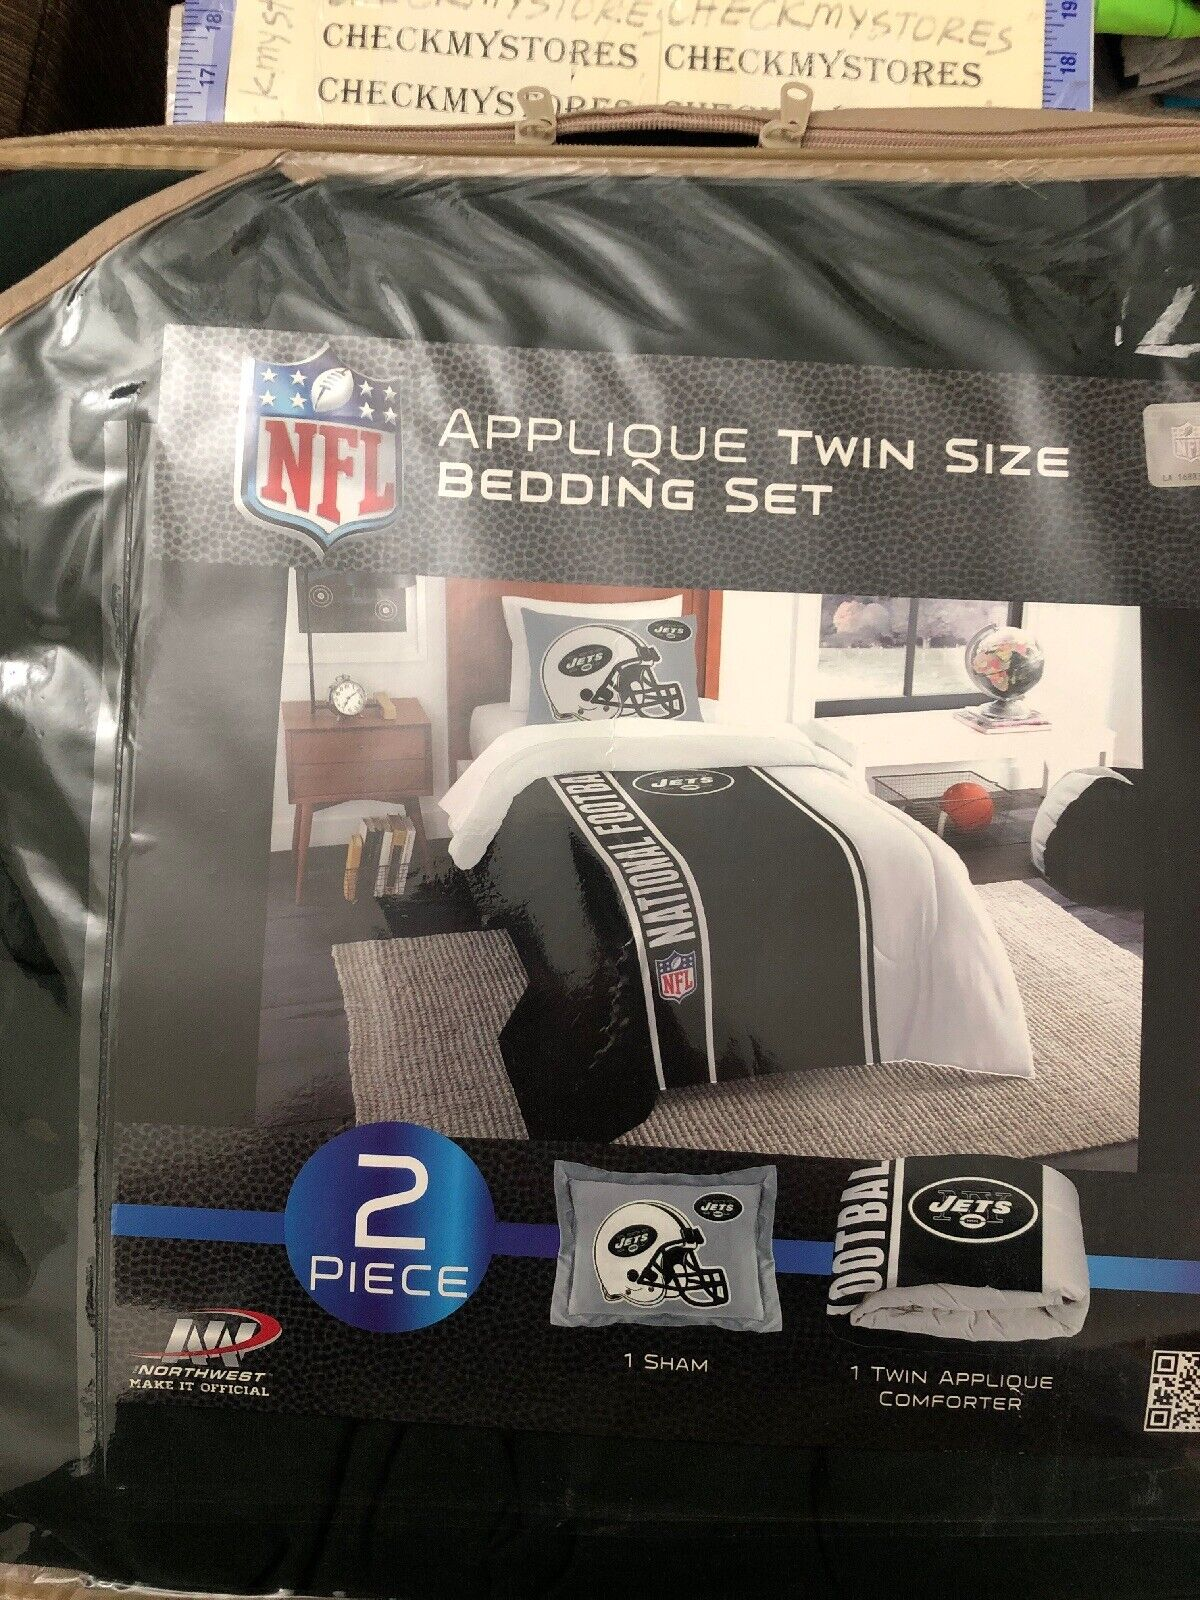 NEW Northwest NFL New York Jets Sham & Twin Comforter Bedding Set AUTHENTIC NFL